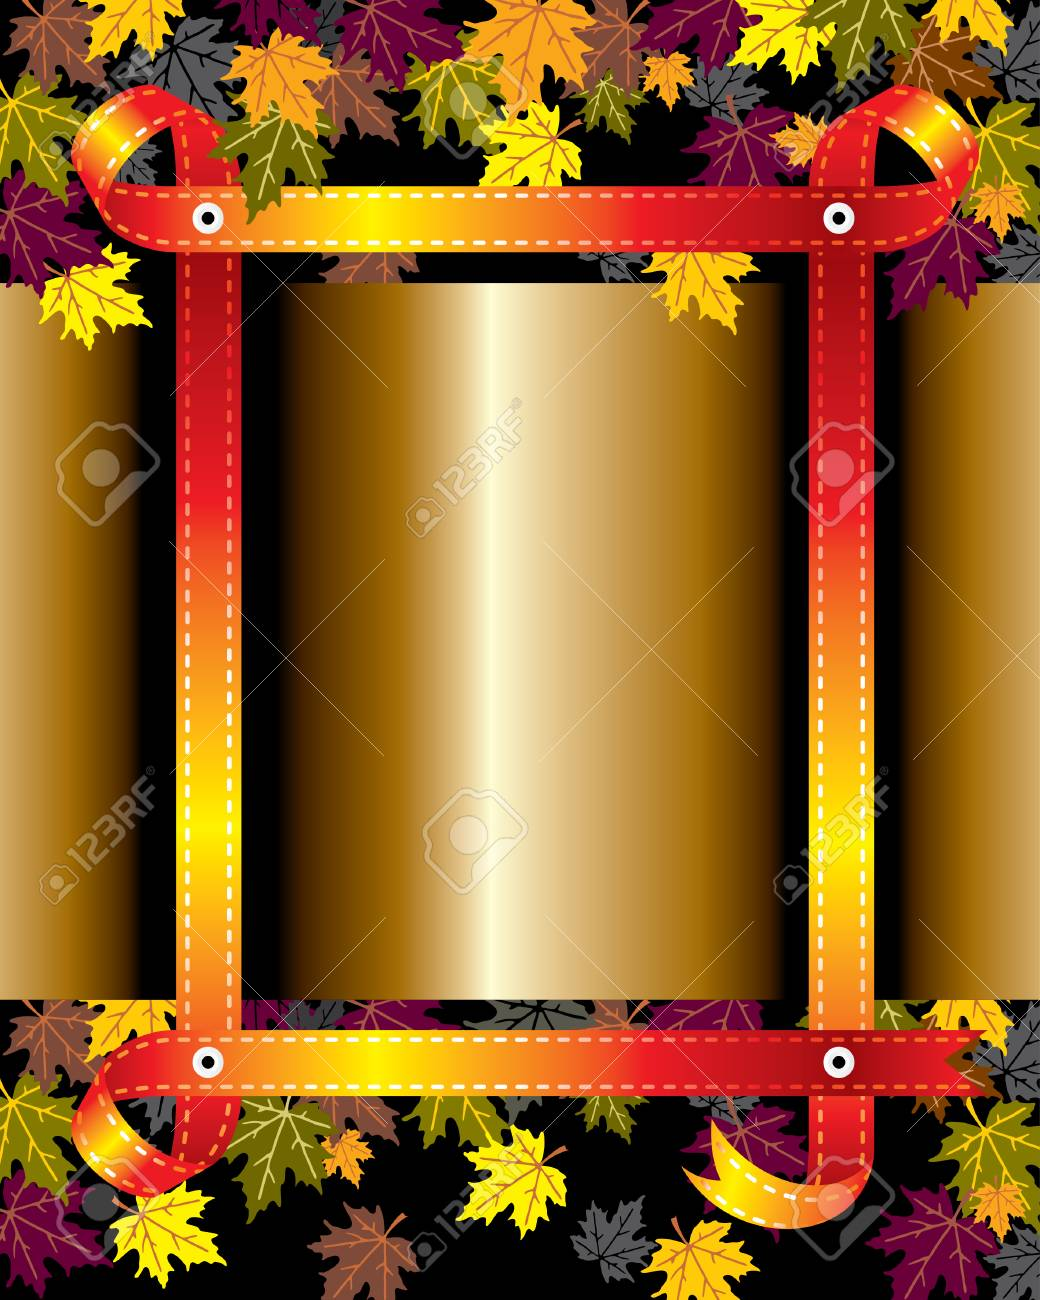 vector background with autumn leaves and ribbon frame Stock Vector - 7850011